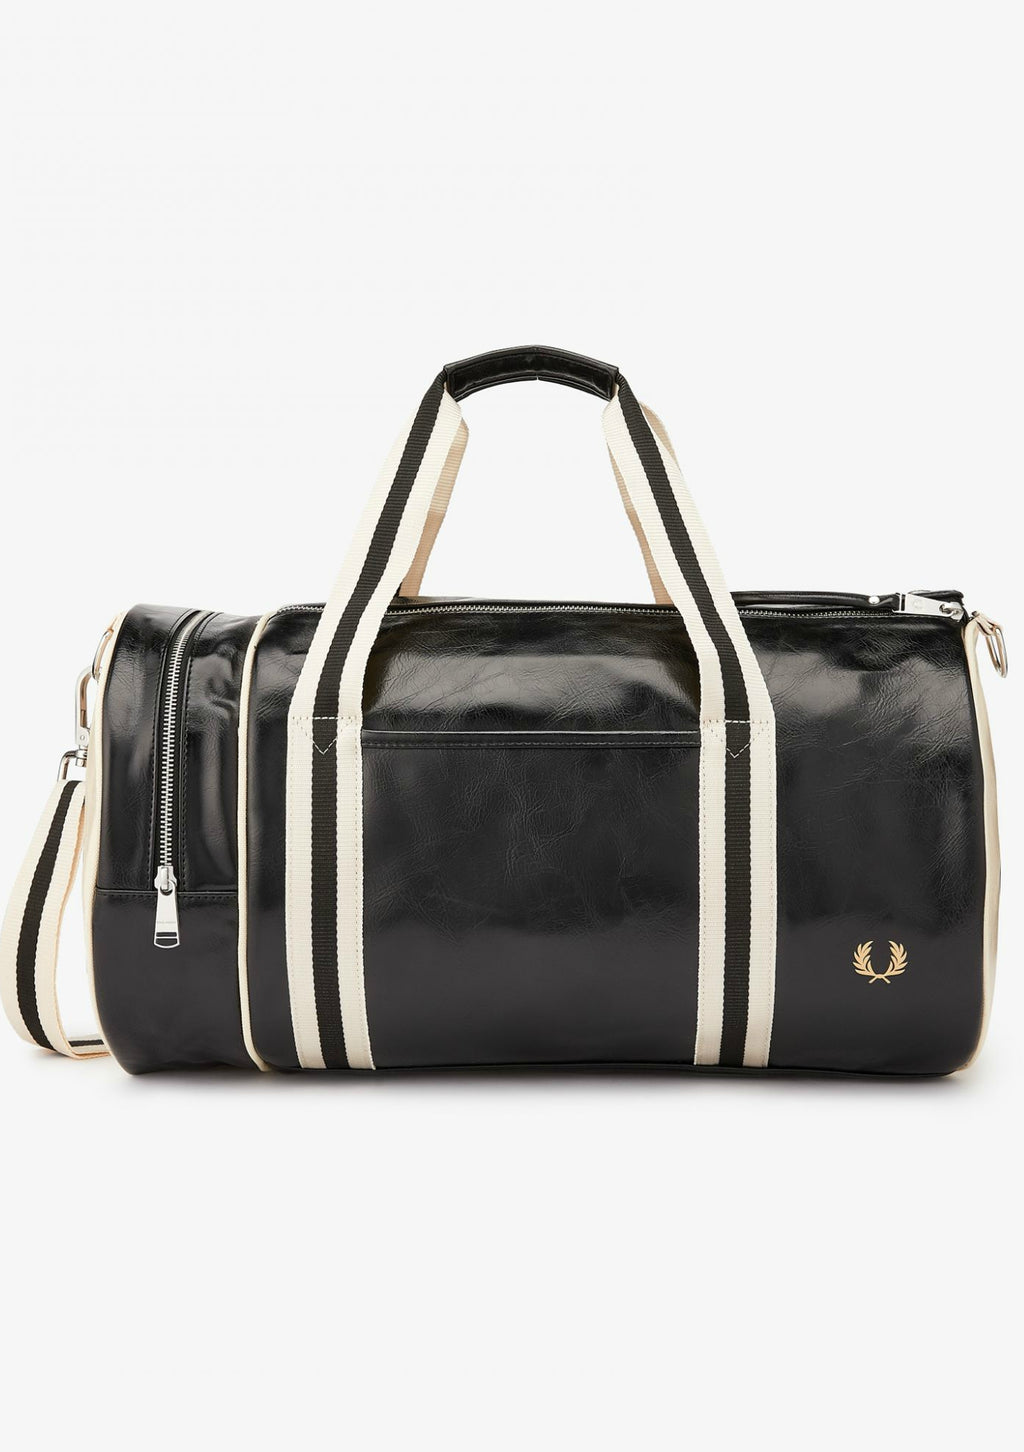 Fred Perry - Barrel Bag L7220 in Black